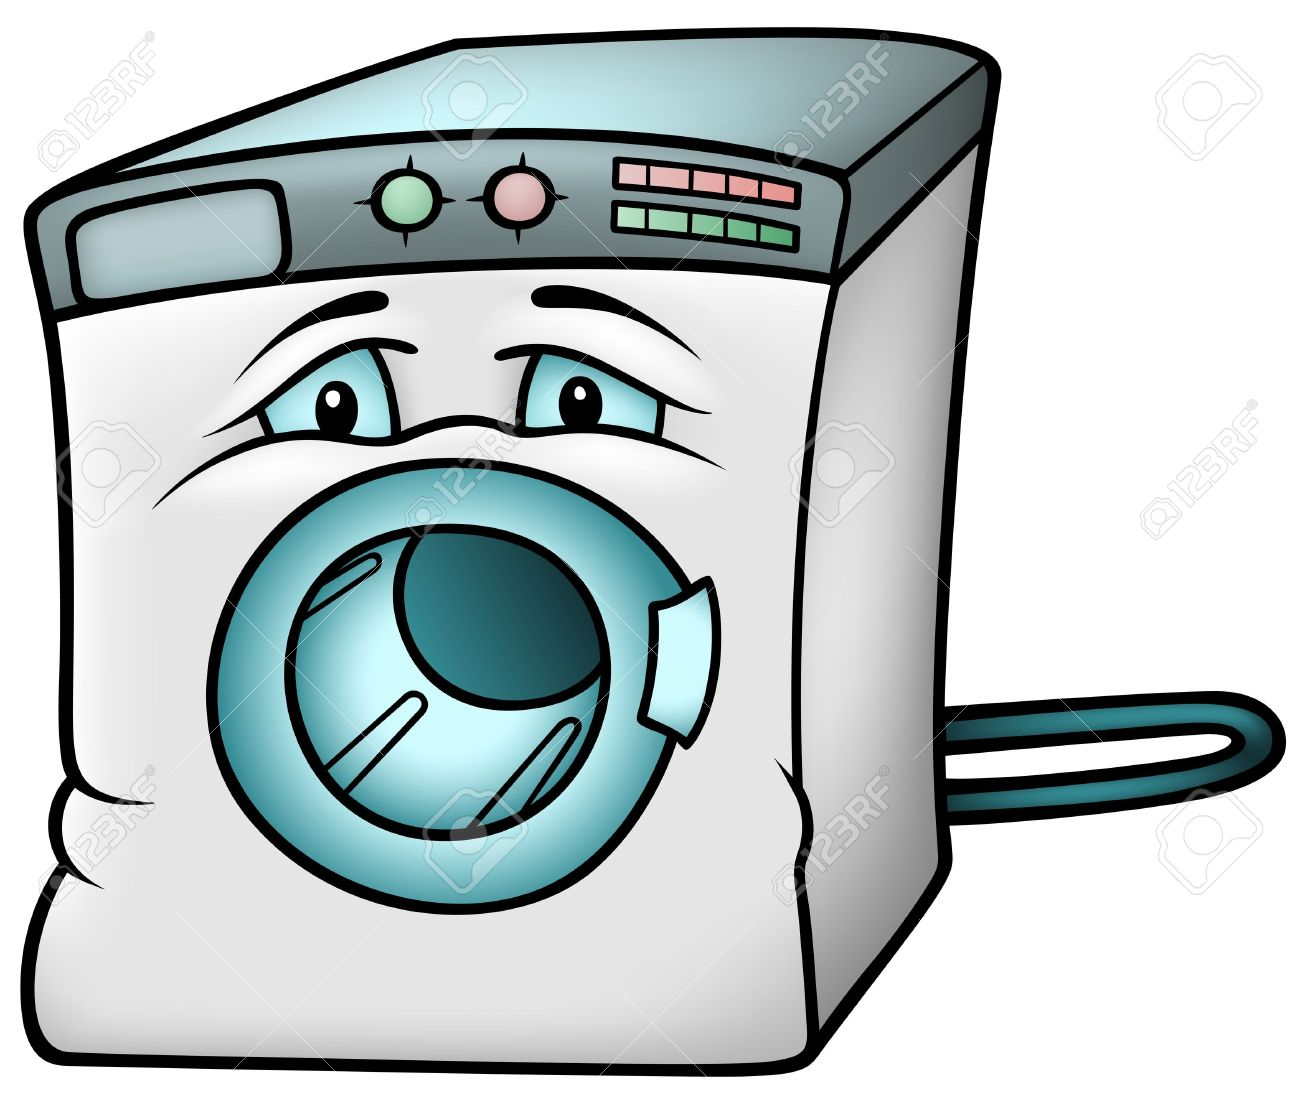 Cartoon Washer And Dryer ~ Washing machine clipart clipground